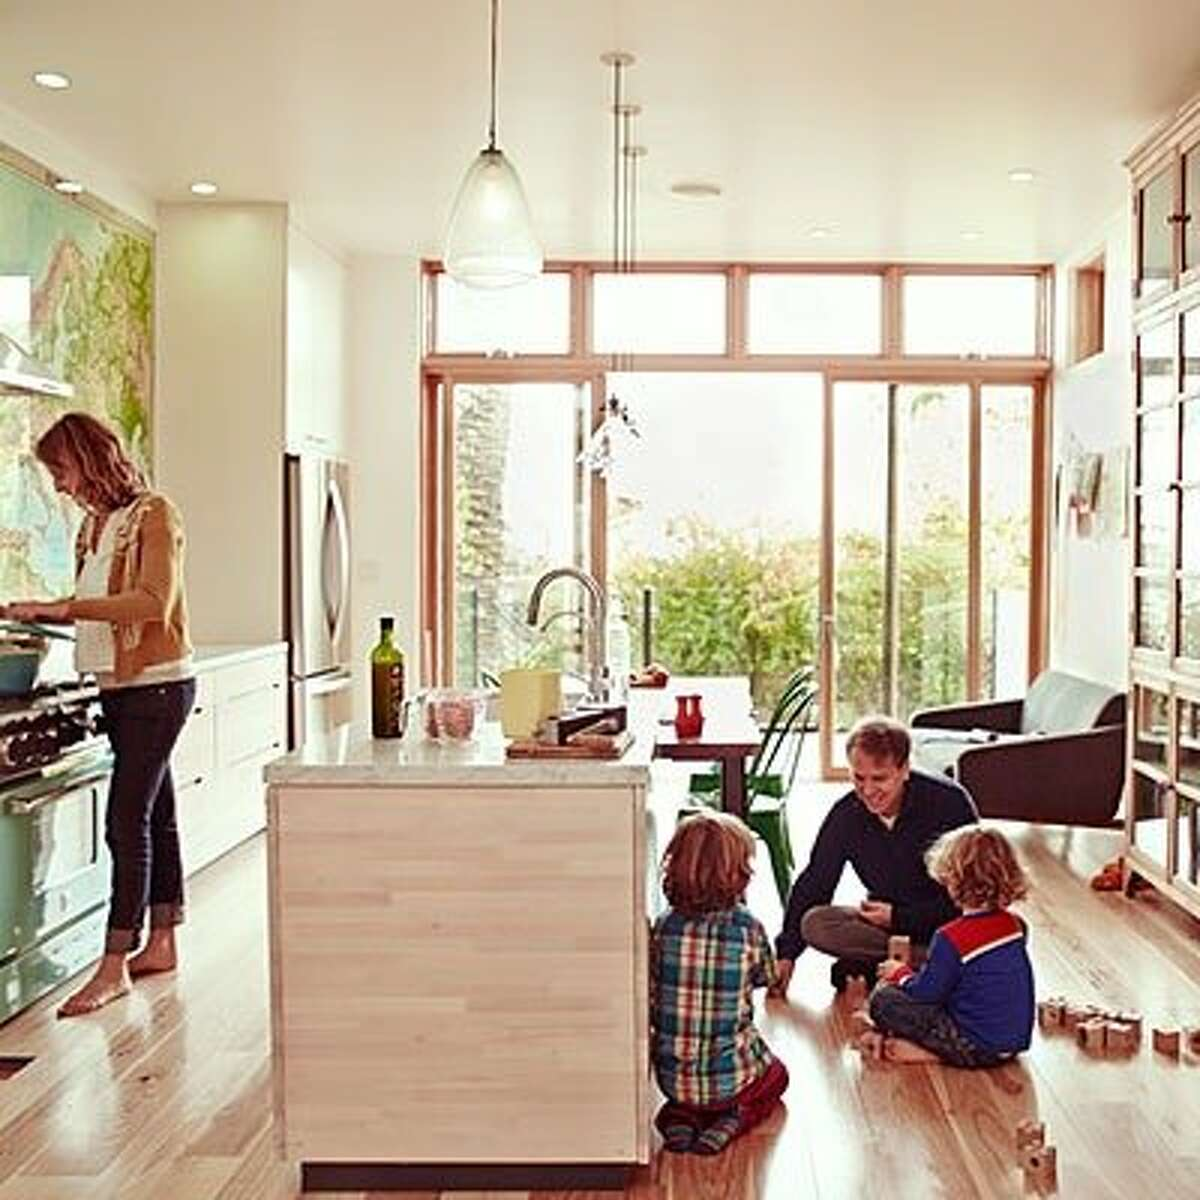 Modern meets old-school: Modern lines and electricity are present in the kitchen, but there are no digital interfaces on those shiny appliances. On the floor, the kids play with toys like wood blocks, not video games. Read more: The unplugged home